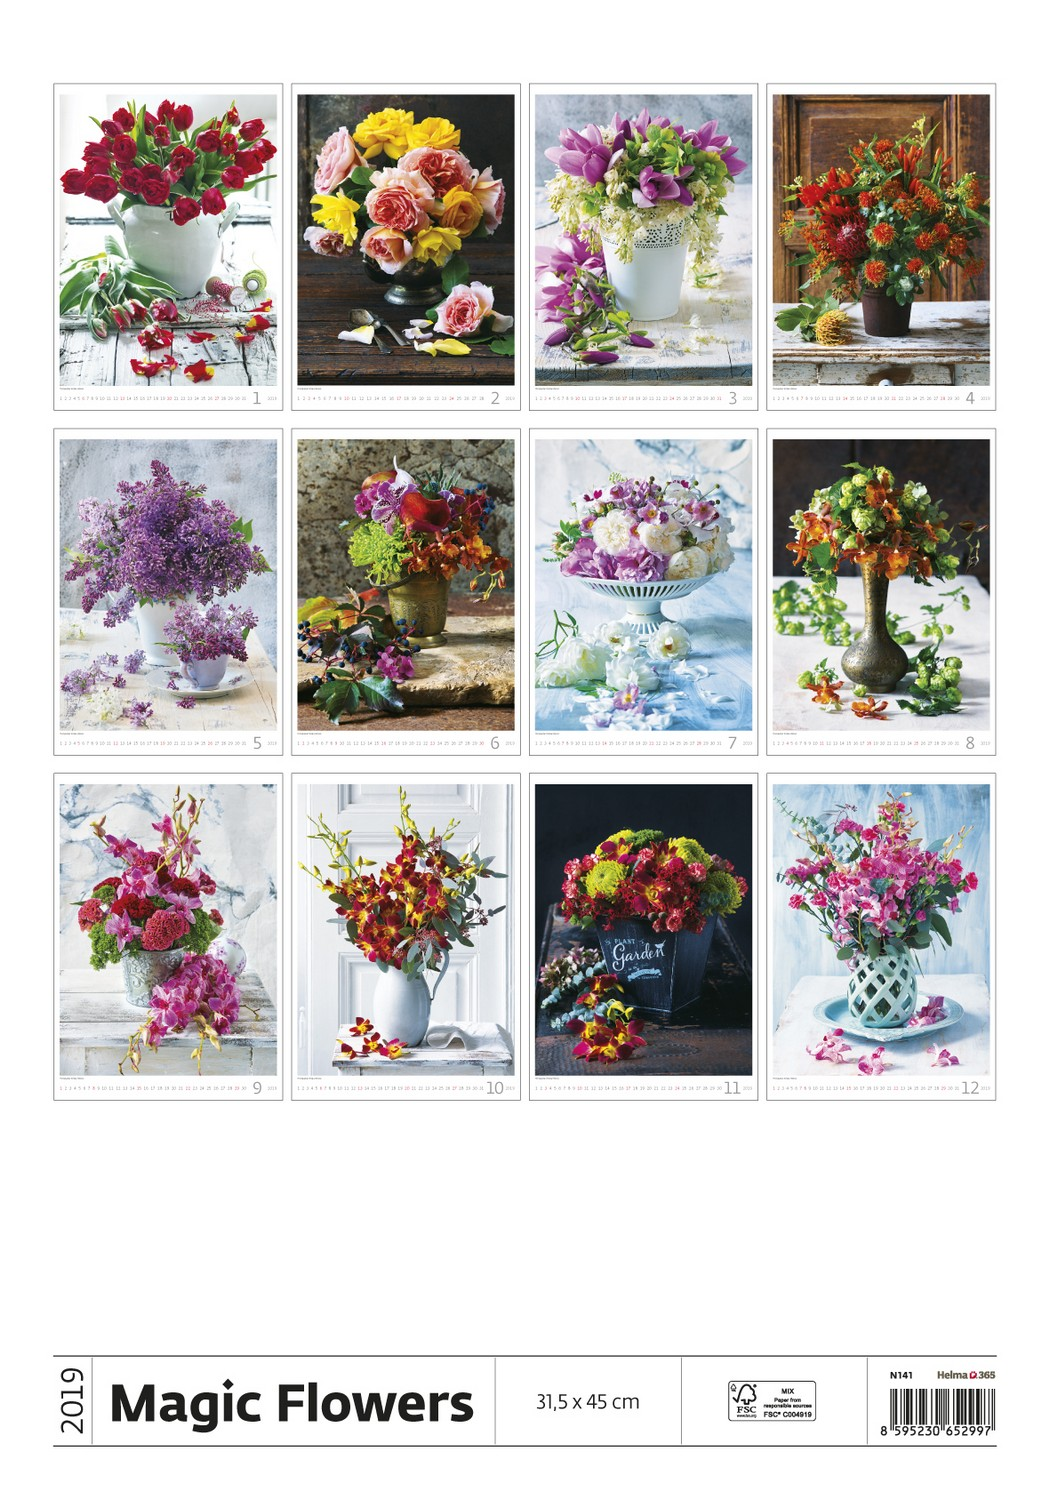 Magic Flowers Calendar 2019 Flower Calendar